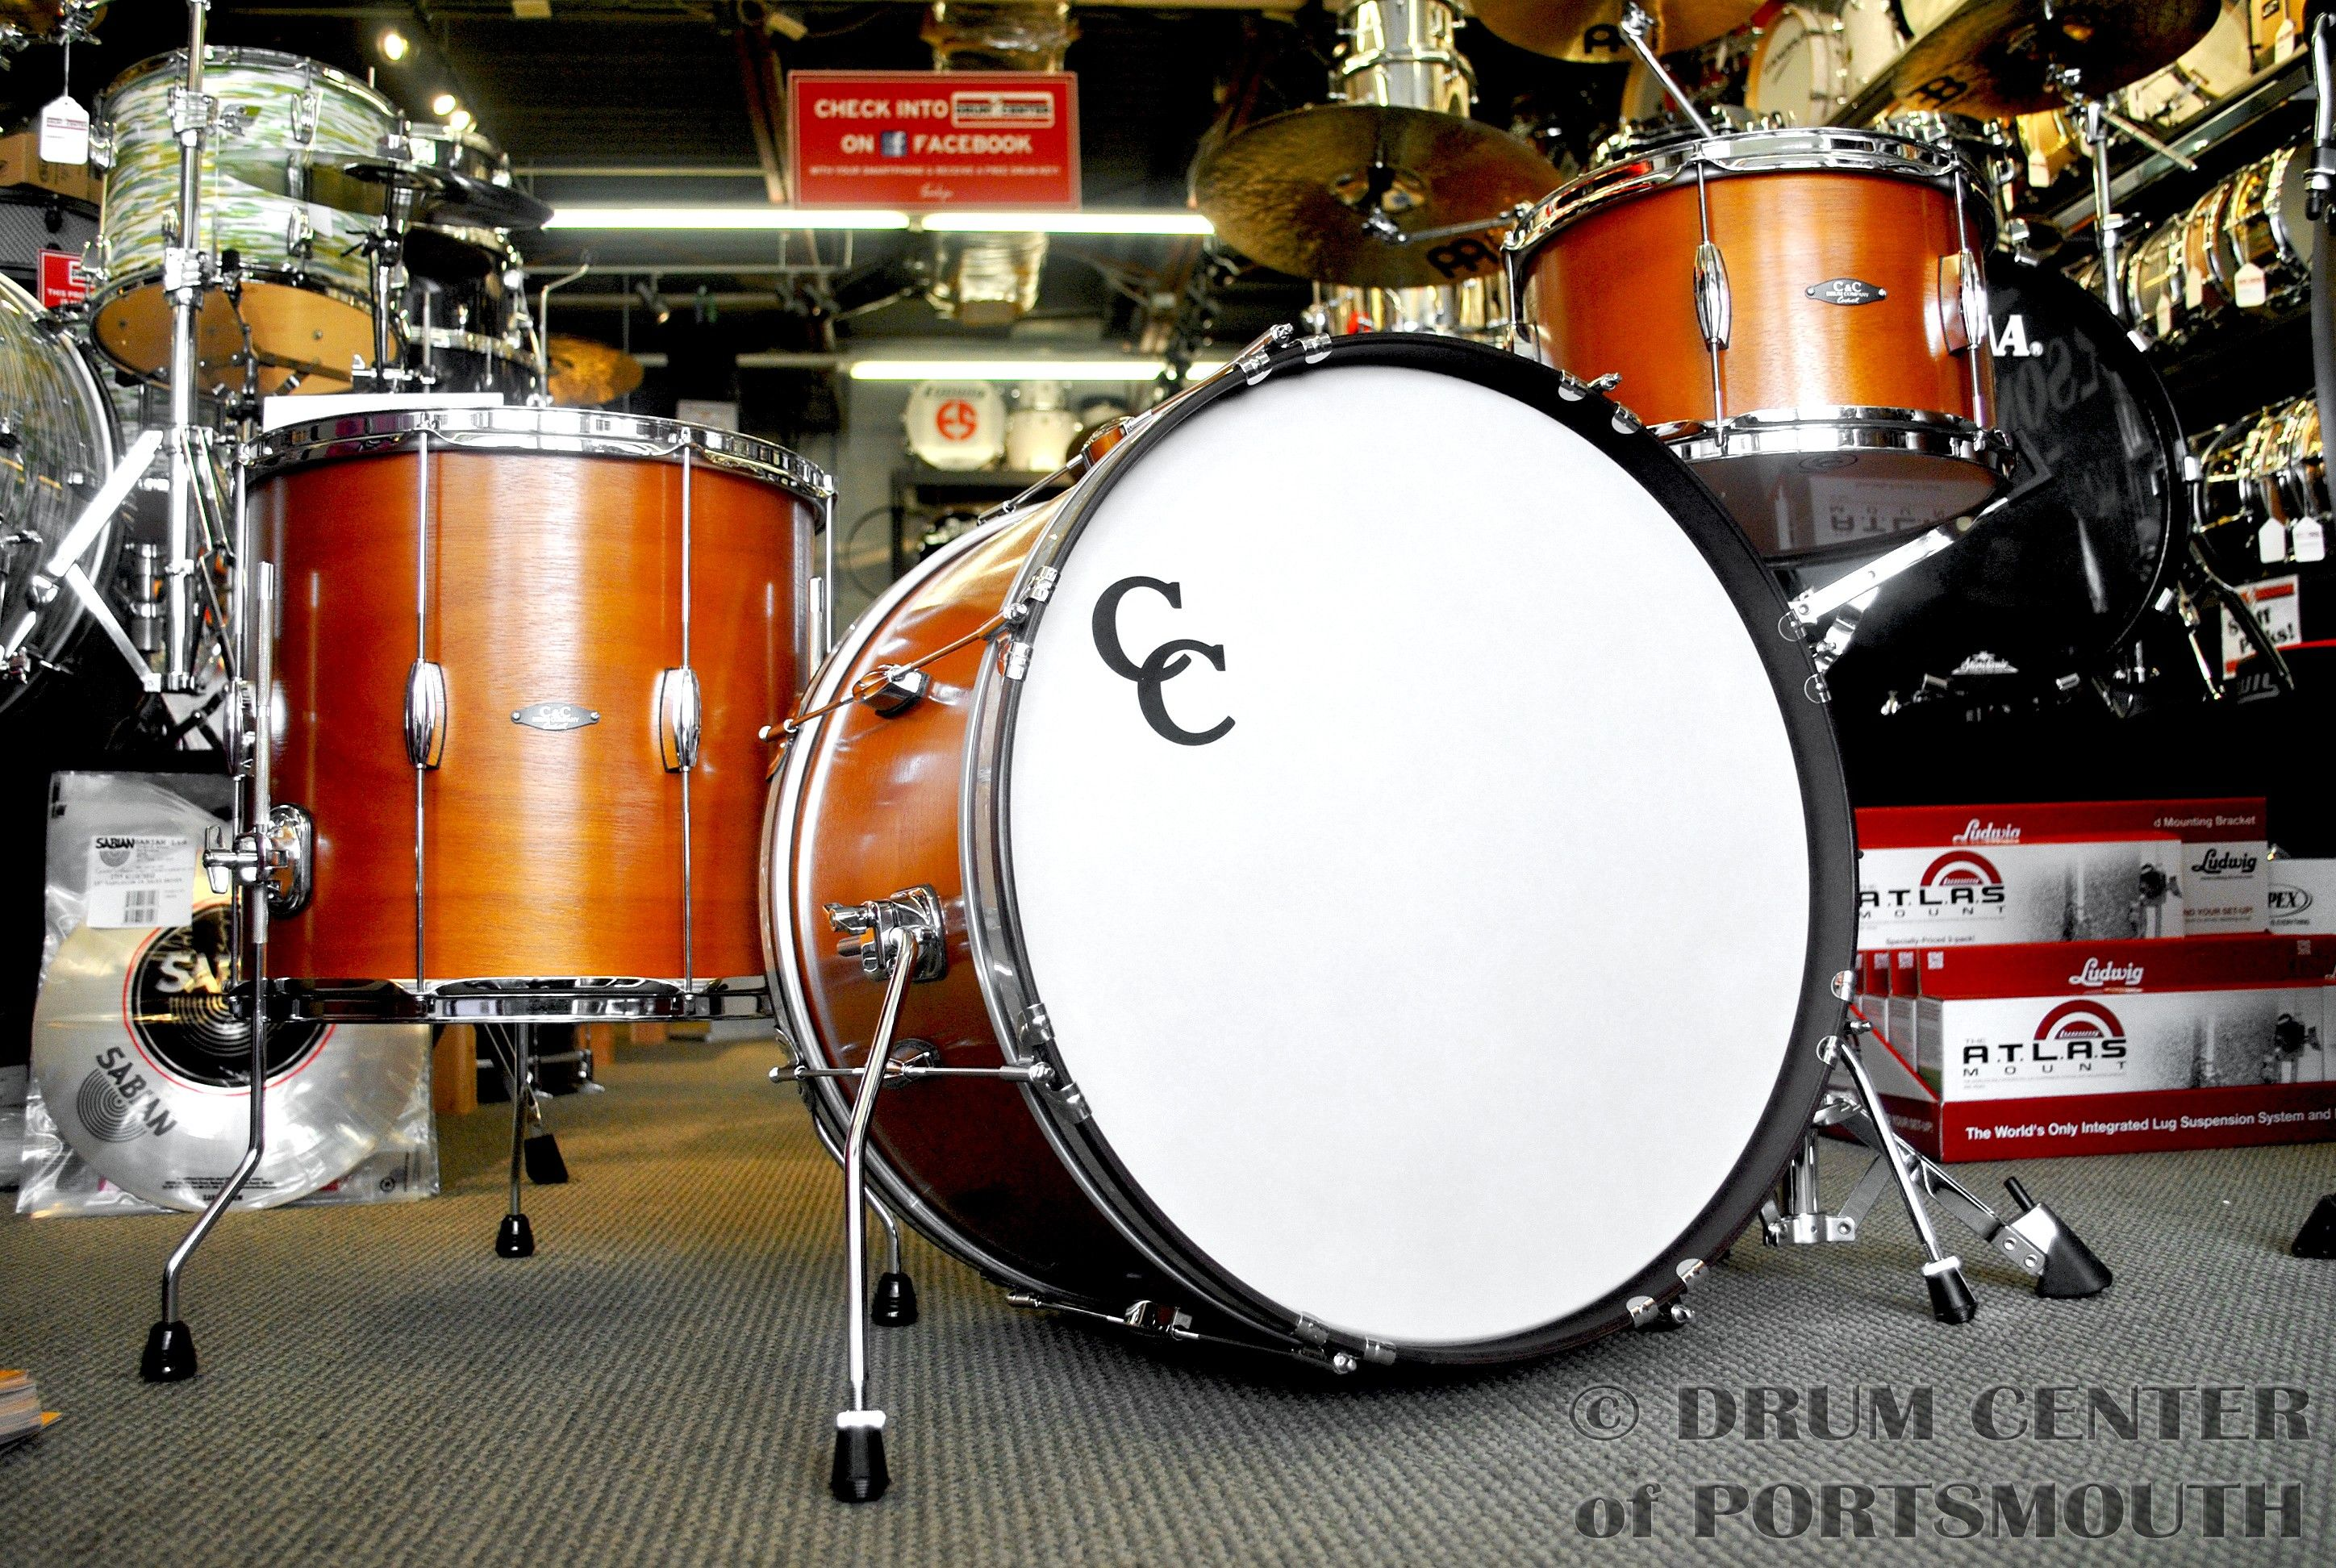 C C Player Date I Drums Feature 7 Ply Gladstone Style Luan Mahogany Shells Centered Beavertail Lugs Triple Flanged Hoops Vintage Fold Out Bd Spurs In Drums